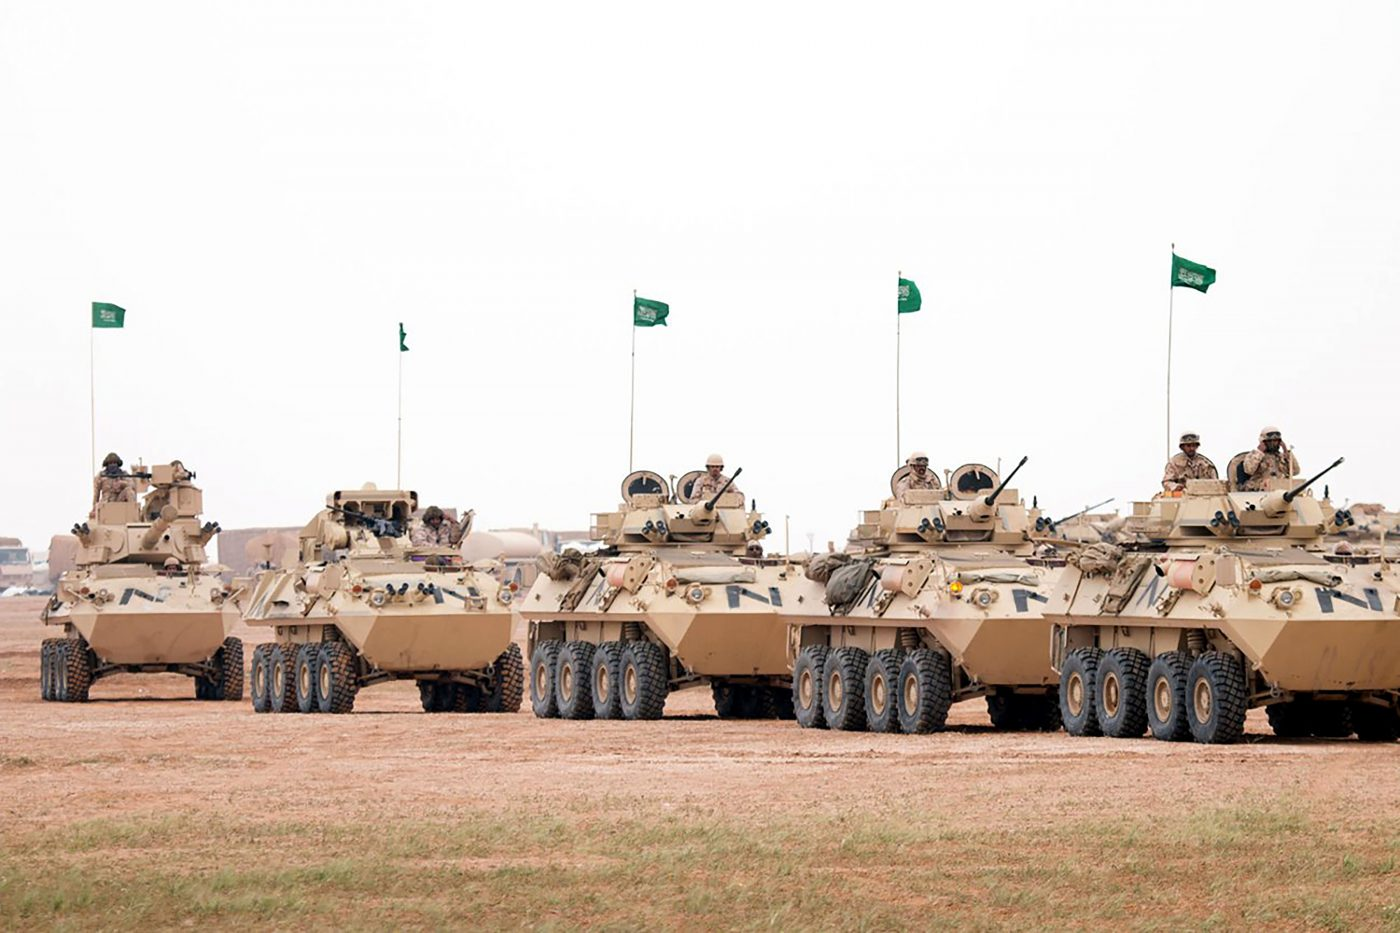 Canada's arms exports to Saudi Arabia violate int'l law